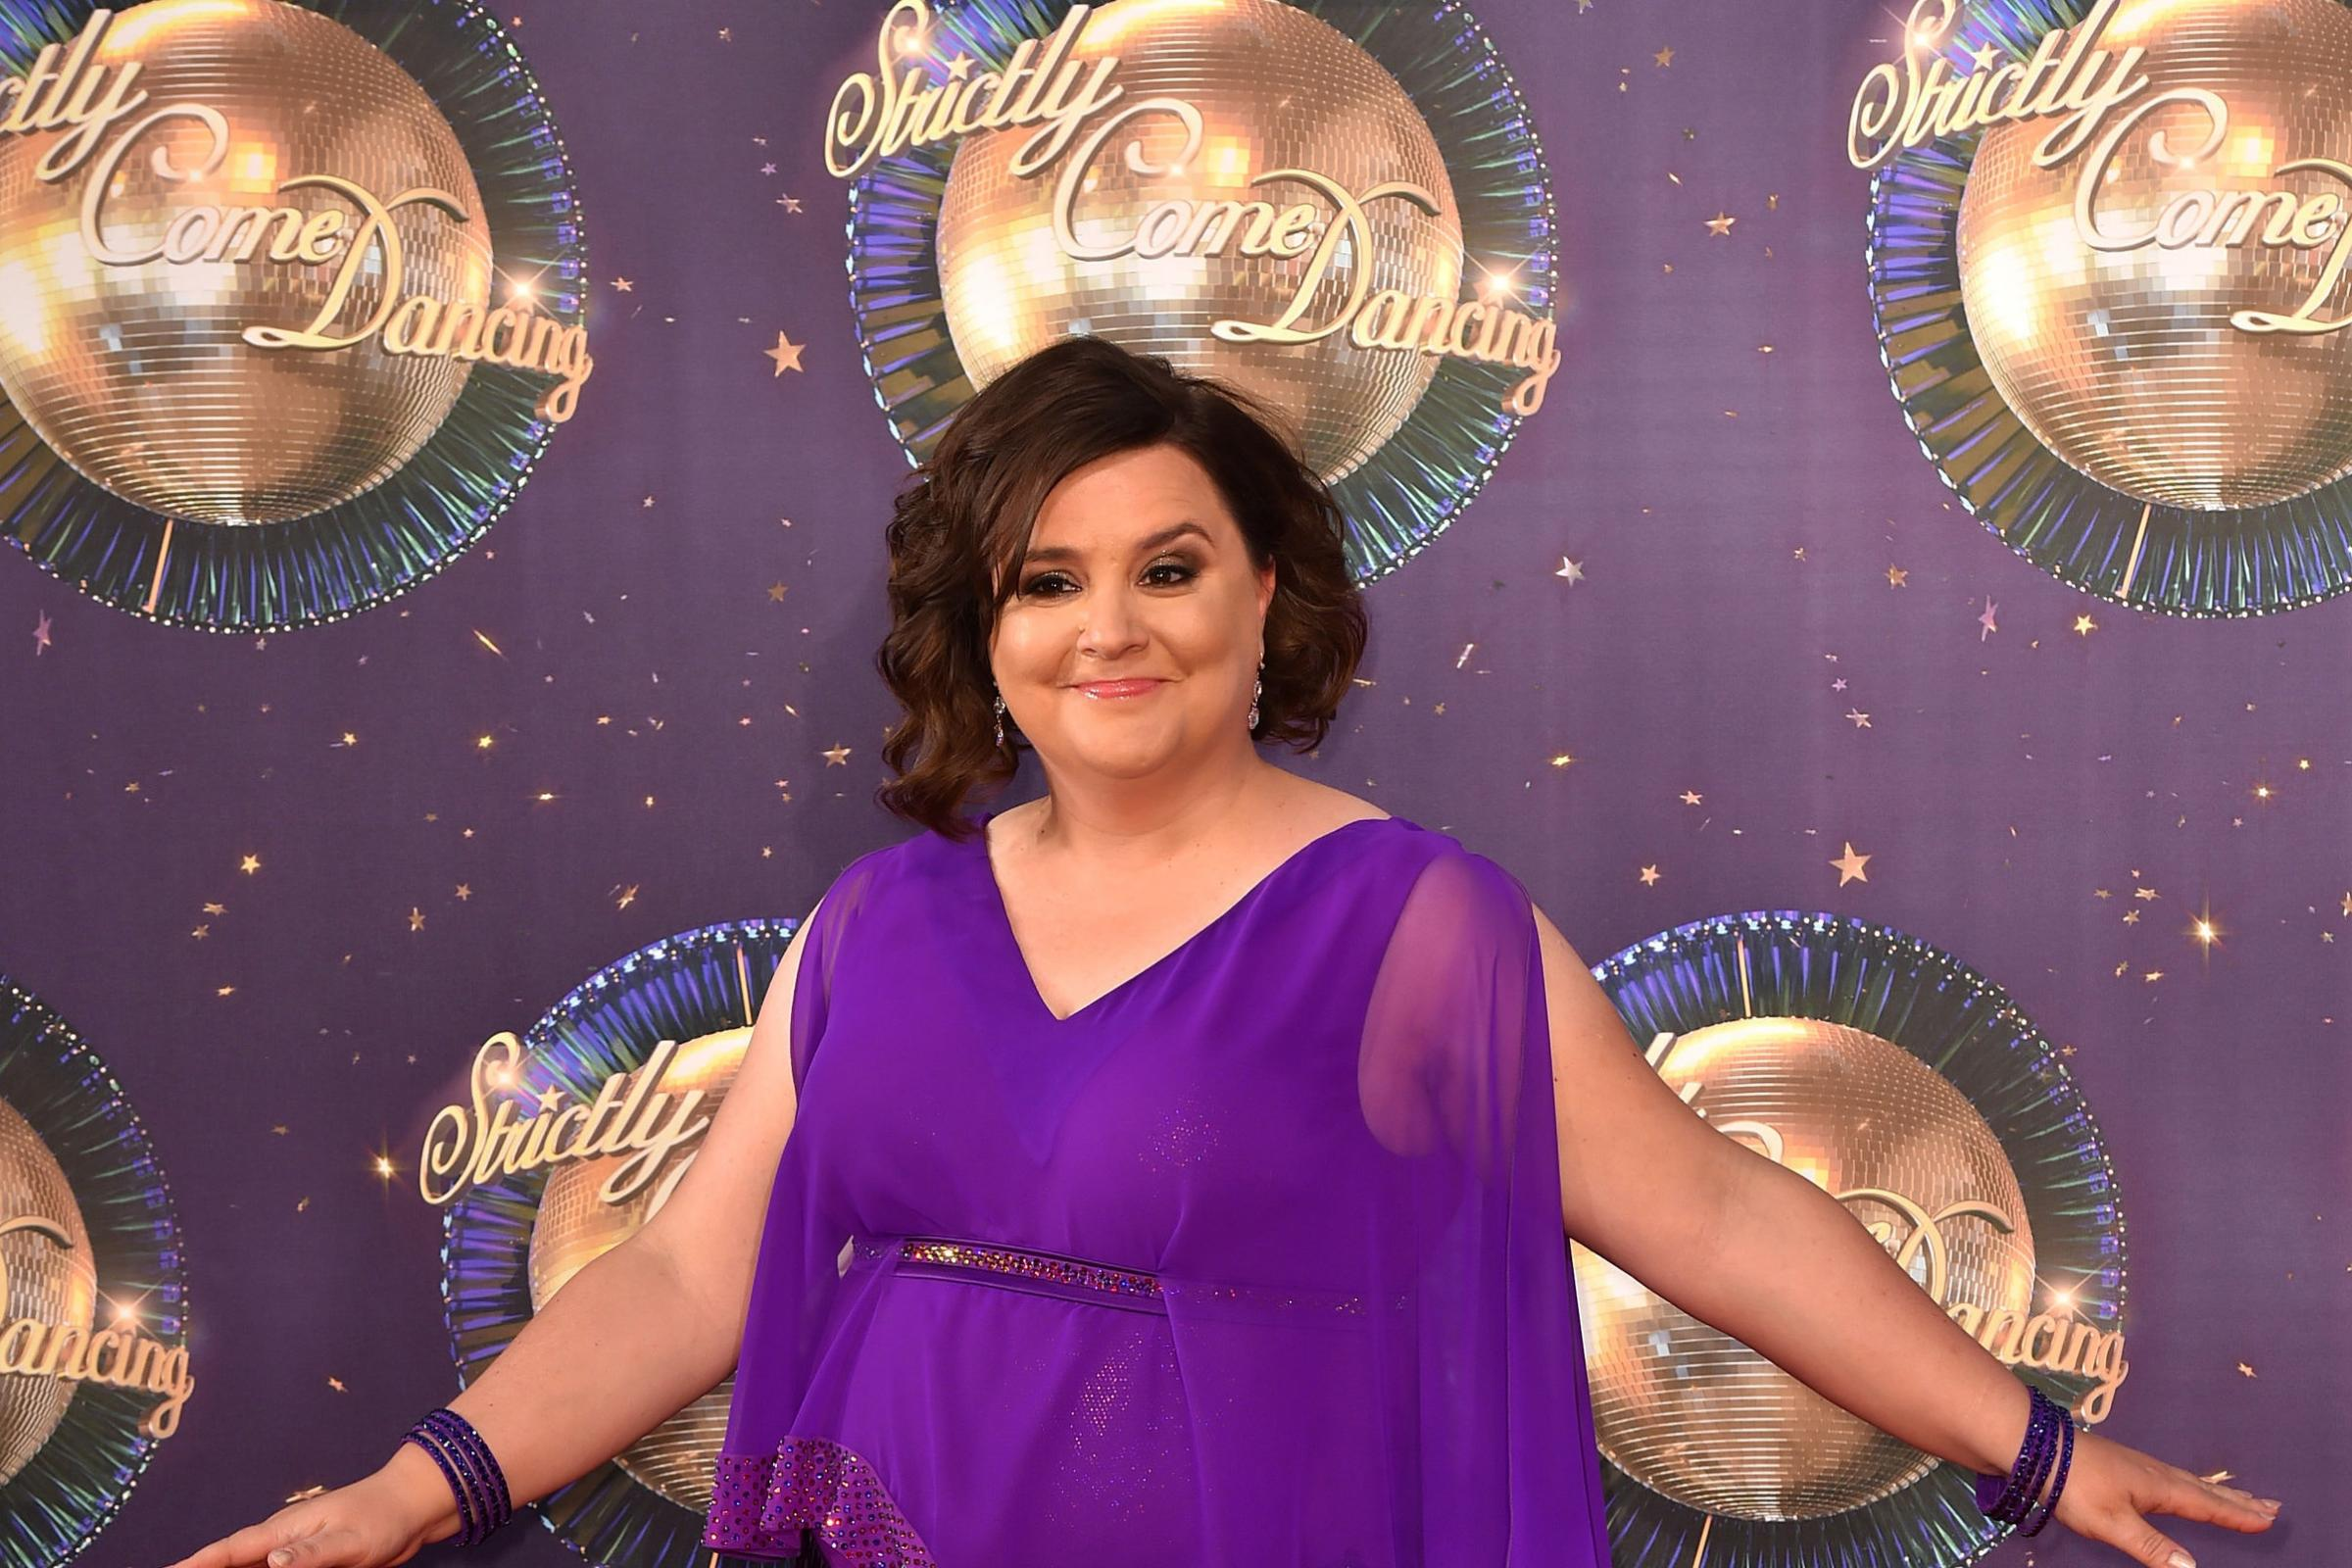 Susan Calman at the Strictly Come Dancing launch (Matt Crossick/PA)